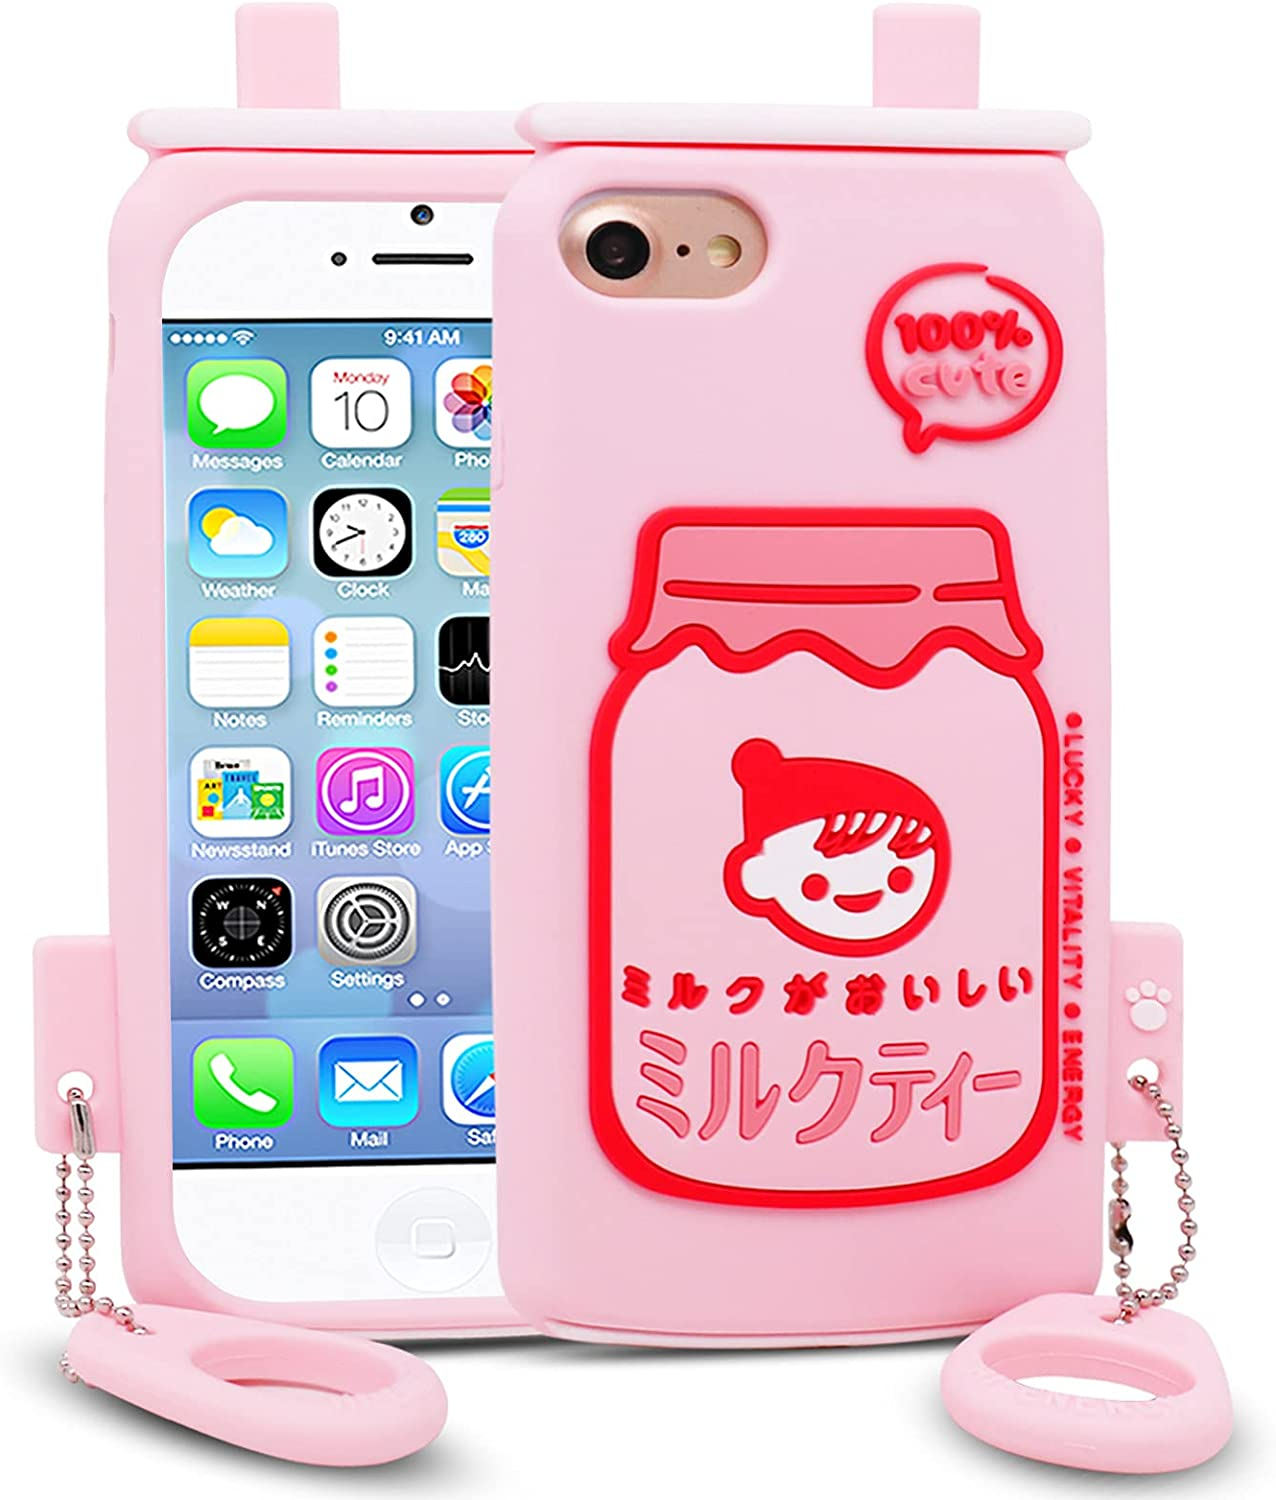 for iPhone 7 / iPhone 8 / iPhone SE 2 / iPhone SE 2020 Case, BEFOSSON 3D Cartoon Funny Soft Silicone Milk Tea Cup Phone Cover Case for iPhone 7/8 / SE2 / SE2020 with Phone Case Ring for Girls Teens